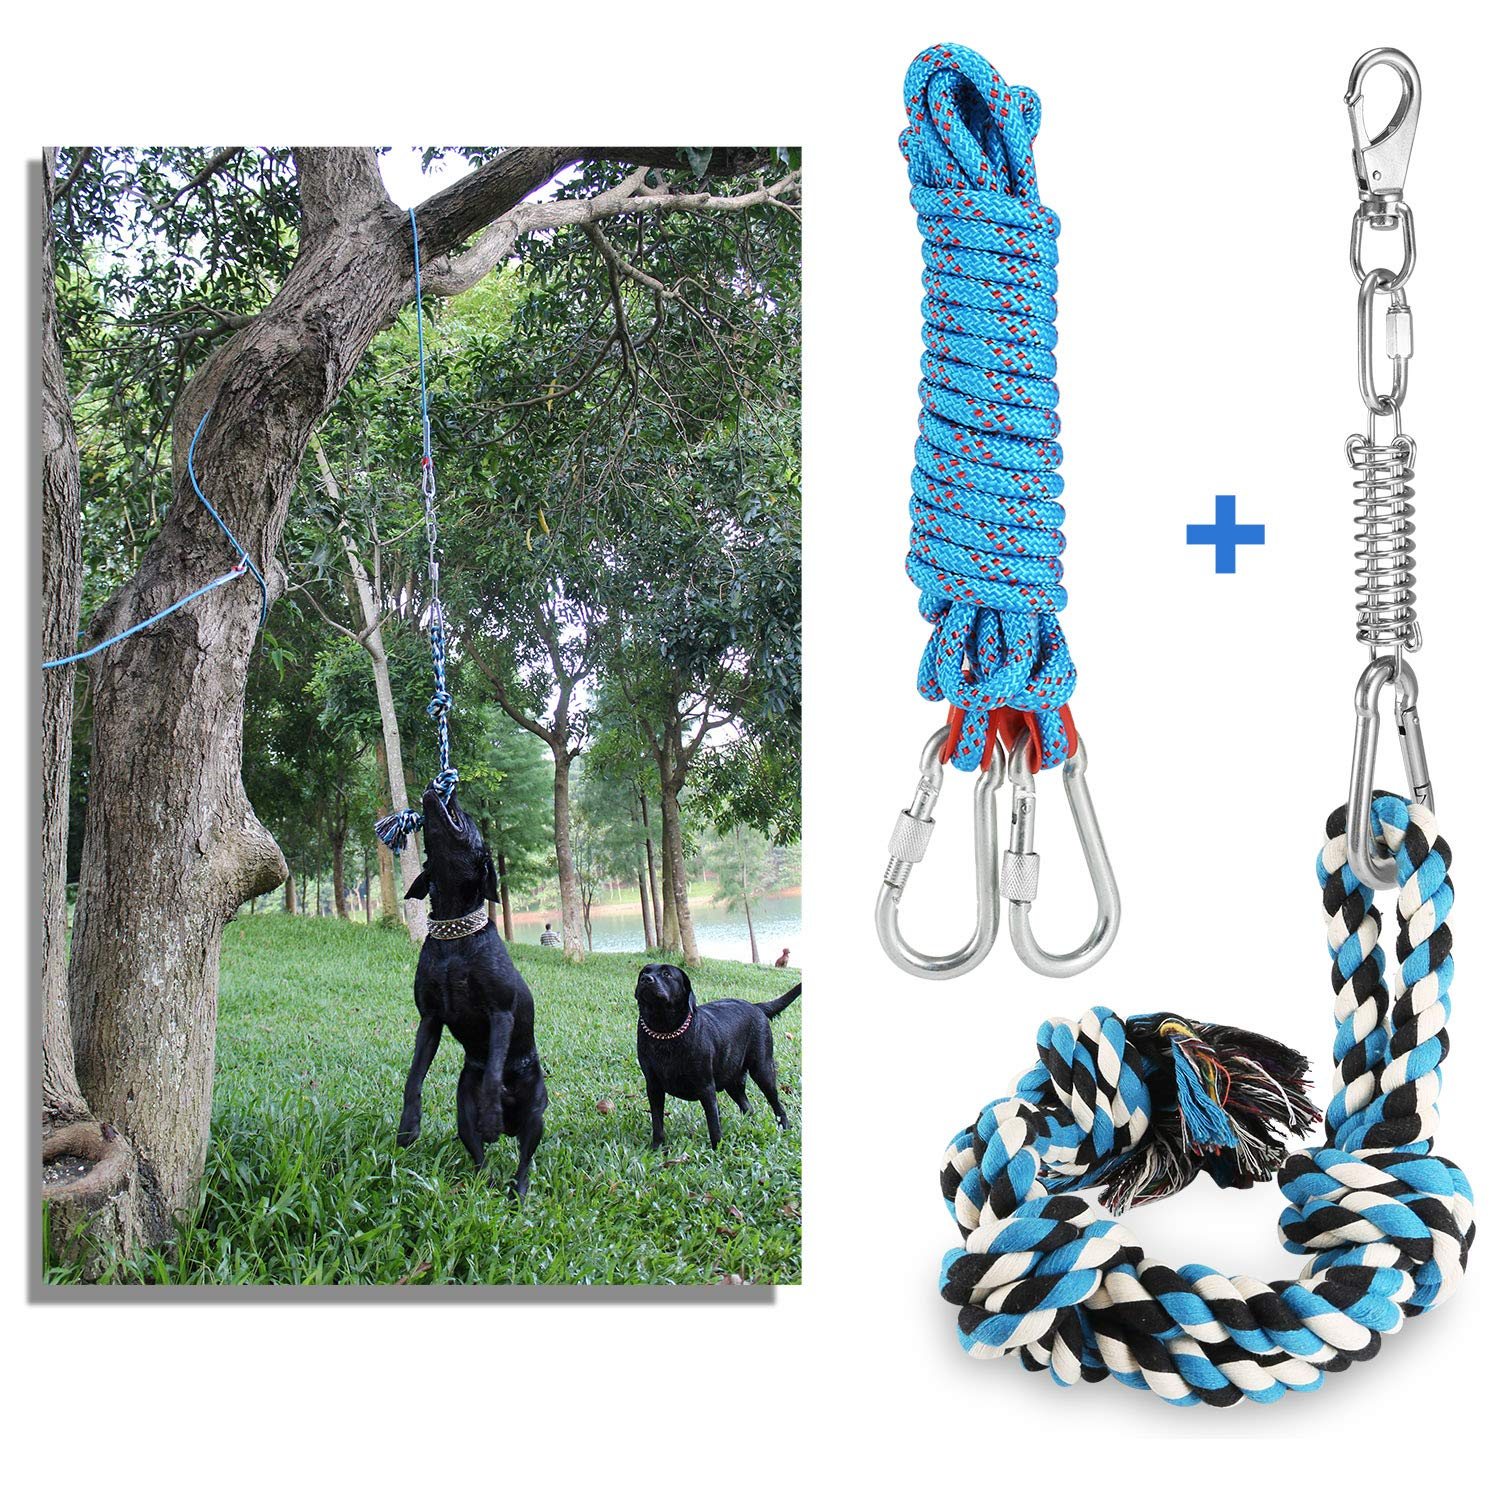 DIBBATU Spring Pole Dog Rope Toys with a Big Spring Pole Kit, Strong Dog Rope Toy and a 16ft Rope for Pitbull & Medium to Large Dogs Outdoor Hanging Exercise Rope Pull & Tug of War Toy-Muscle Builder by DIBBATU